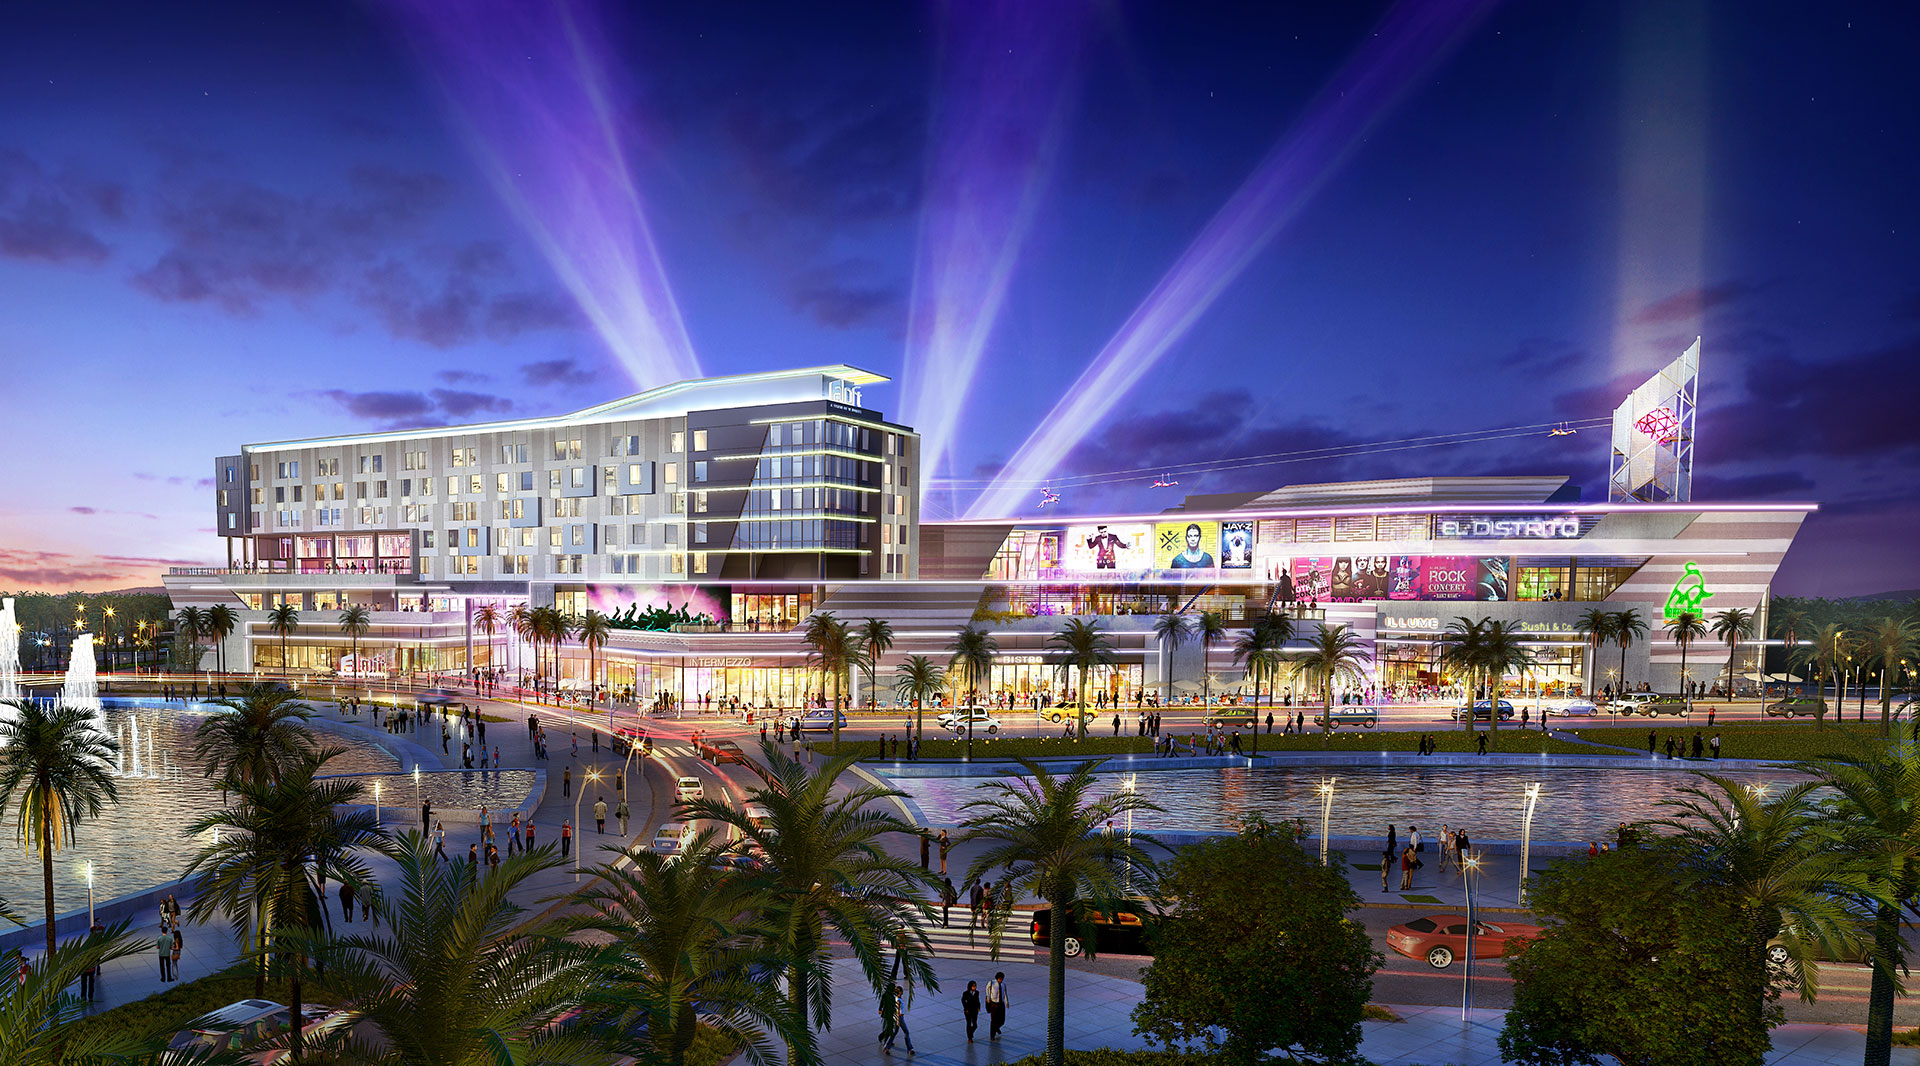 District Live! is a multi-million dollar innovative entertainment center being developed next to the Convention Center in San Juan.